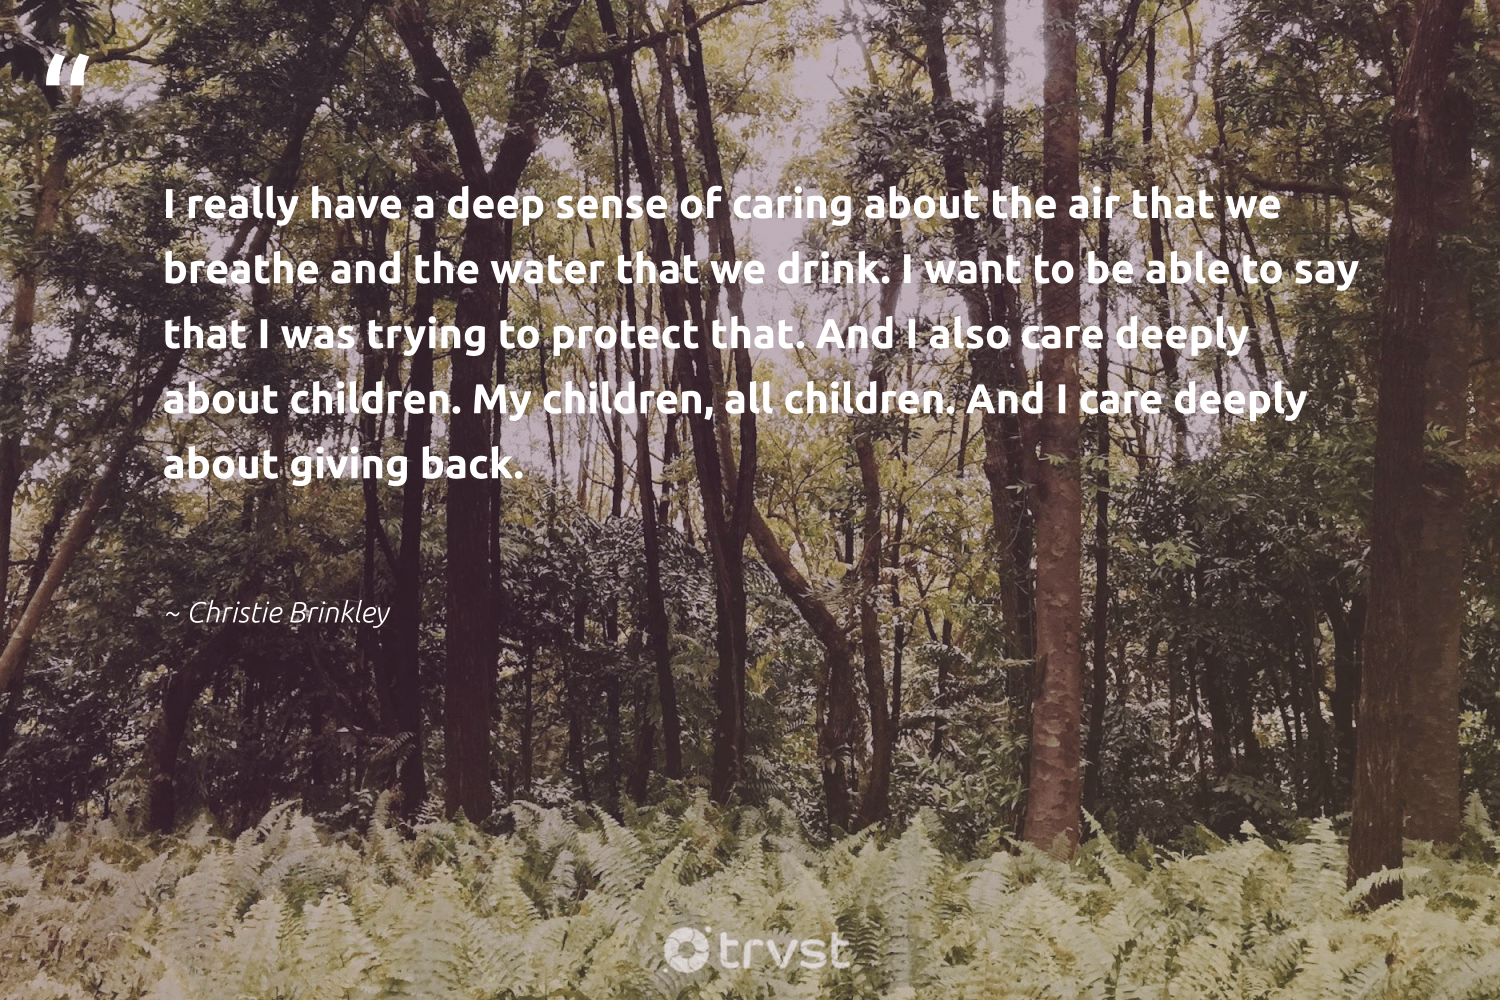 """""""I really have a deep sense of caring about the air that we breathe and the water that we drink. I want to be able to say that I was trying to protect that. And I also care deeply about children. My children, all children. And I care deeply about giving back.""""  - Christie Brinkley #trvst #quotes #givingback #water #children #dogood #saveourocean #togetherwecan #itscooltobekind #bethechange #socialgood #ocean"""